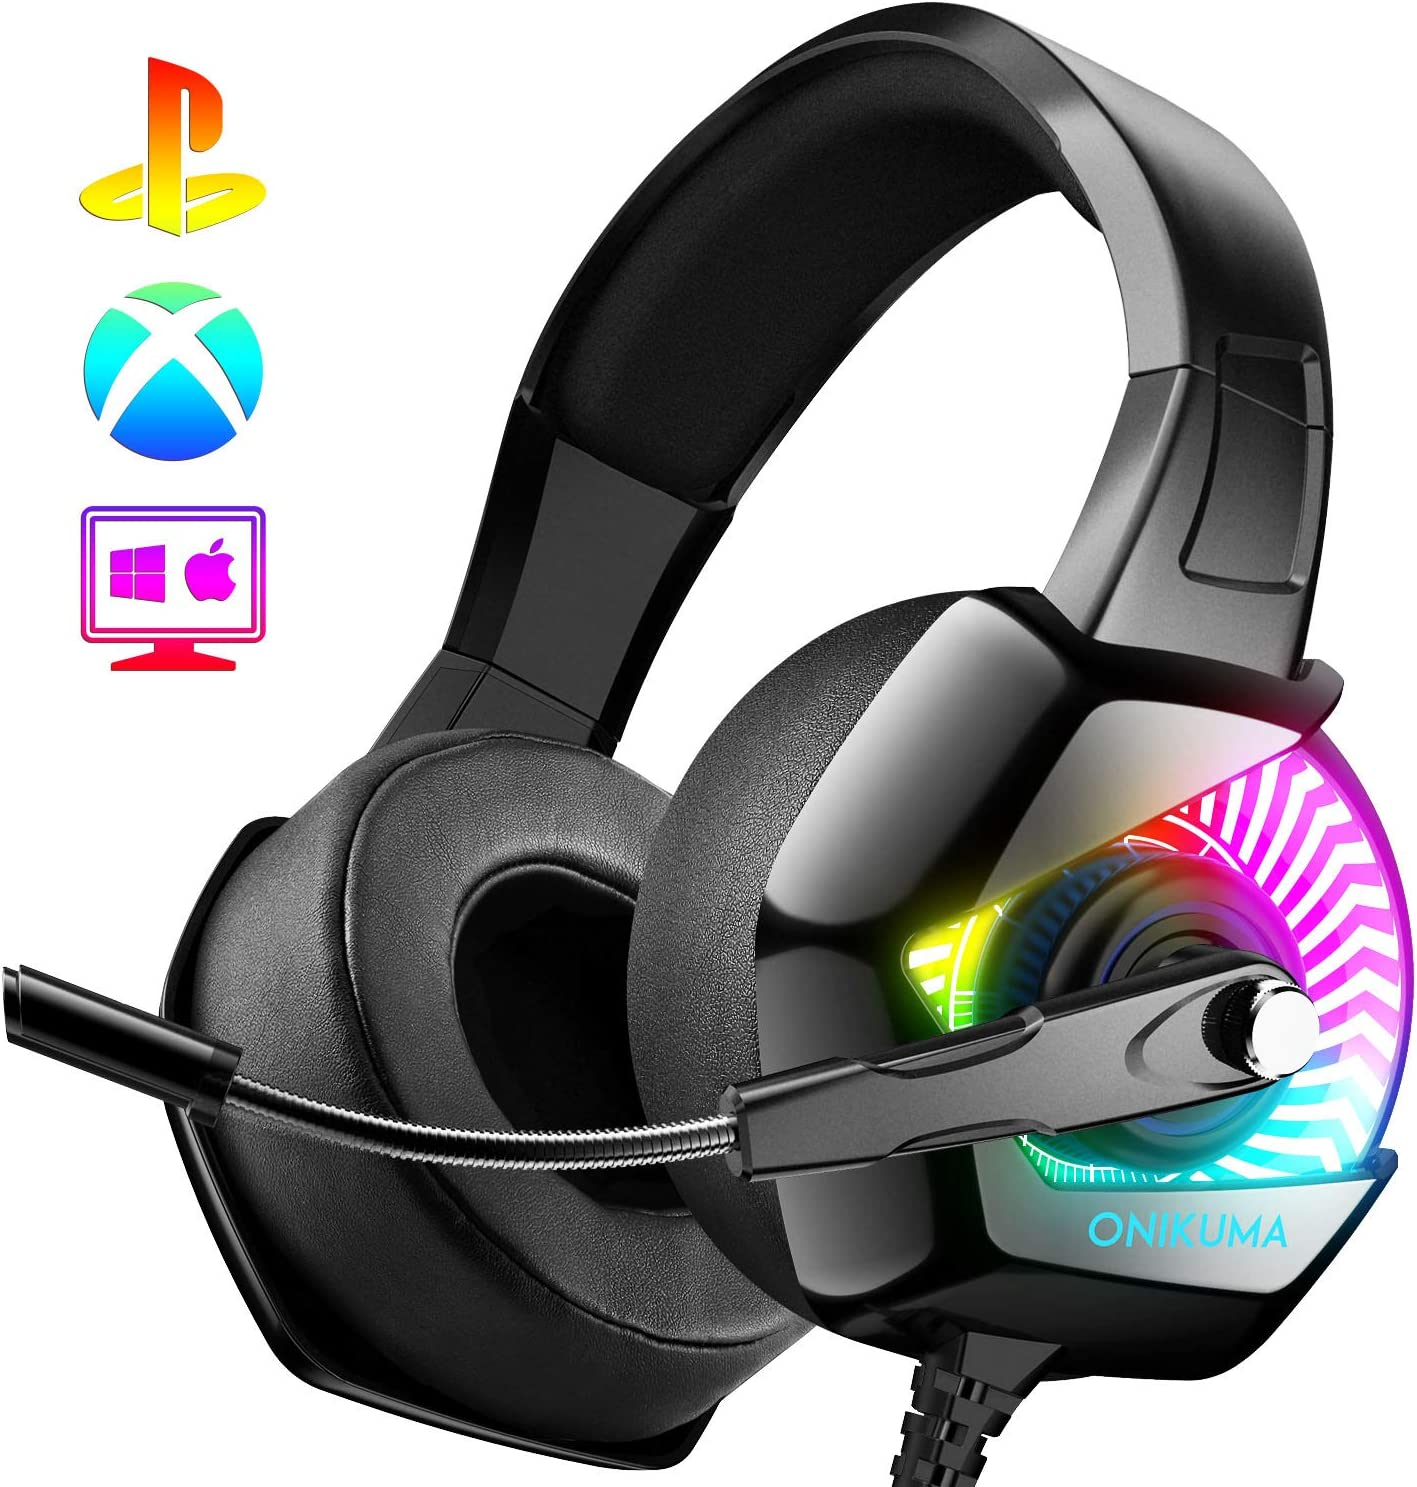 ONIKUMA Gaming Headset-PS4 Headset with Mic, 7.1 Surround Sound & RGB LED Light,Gaming Headphones PC Headset with Noise Canceling for PS4, PC, Mac, Super Nintendo, Xbox One (Adapter Not Included)